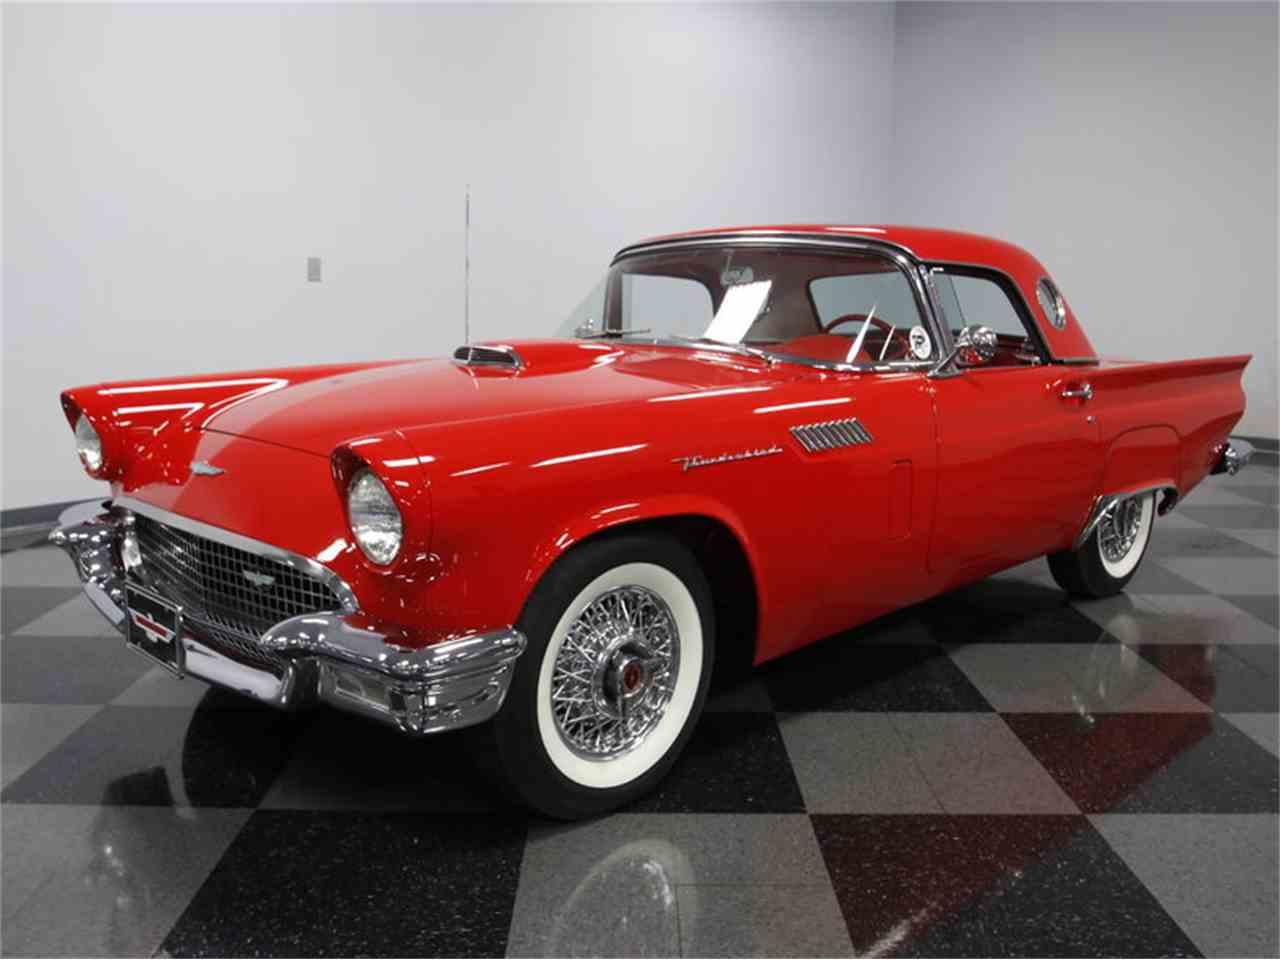 Large Picture of 1957 Ford Thunderbird located in Concord North Carolina - $41,995.00 - LSNS